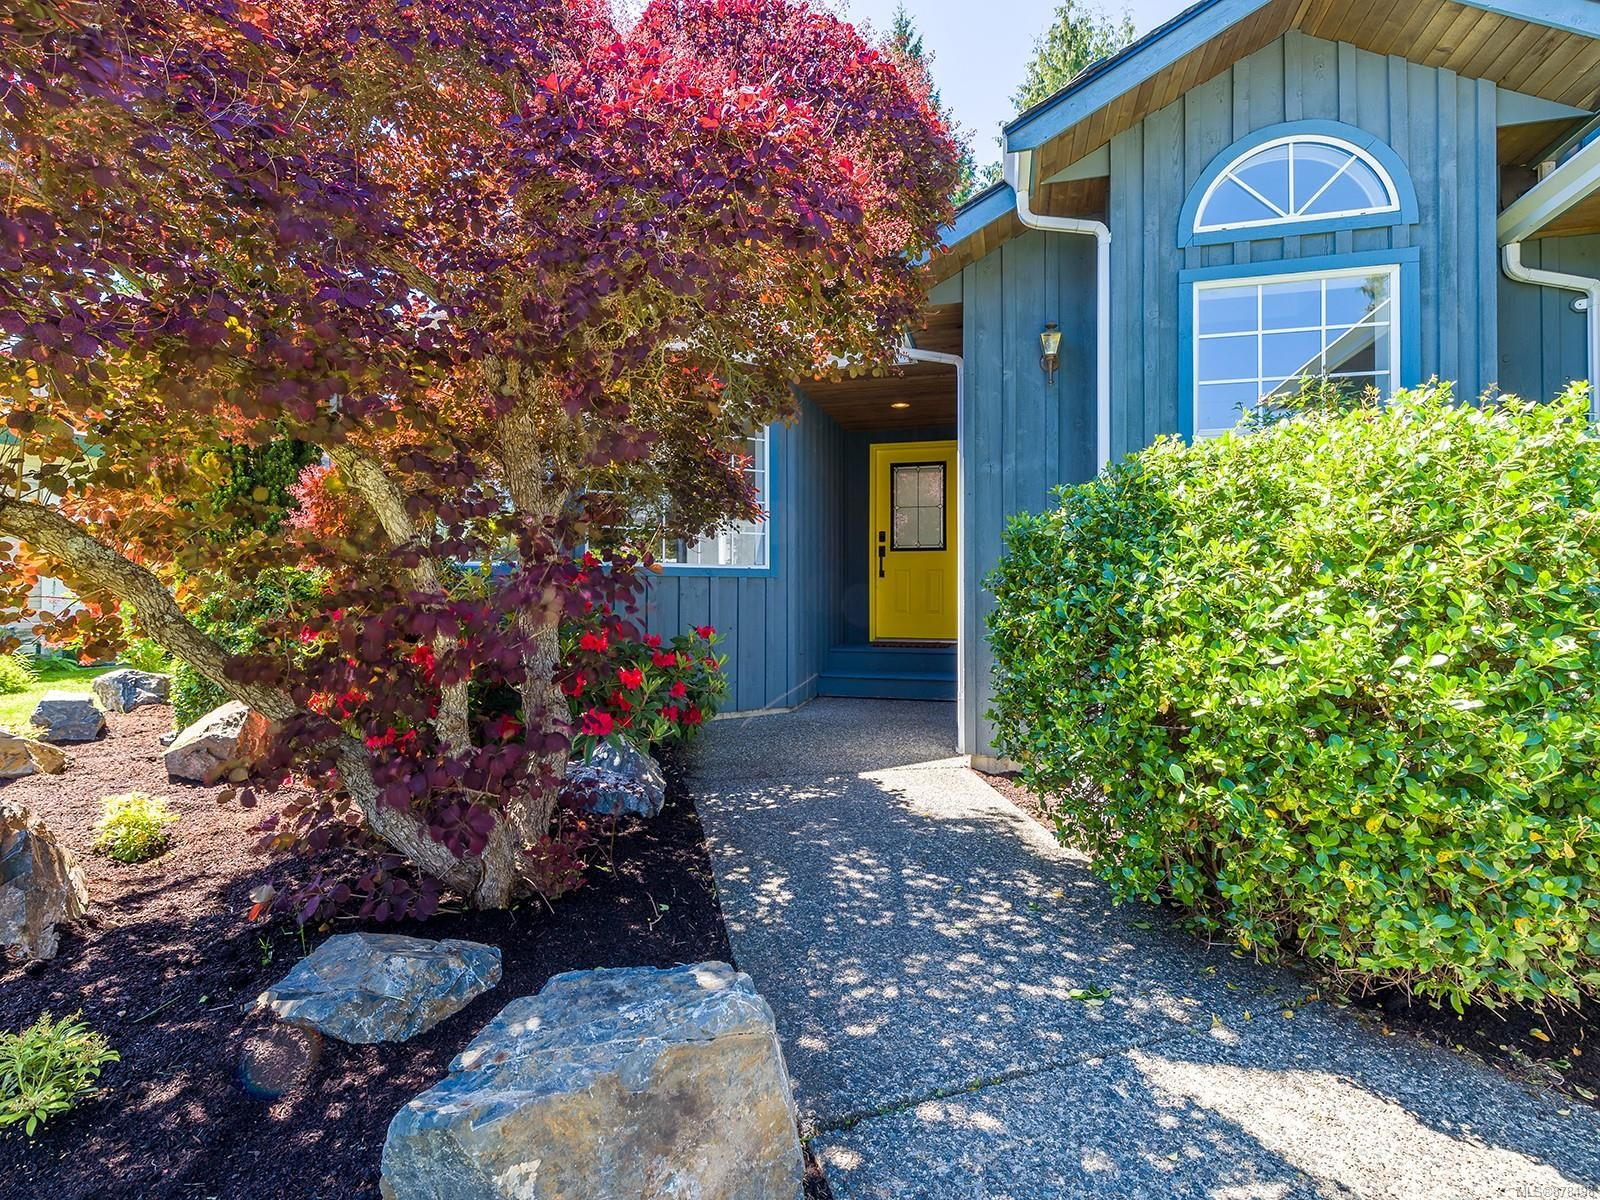 Main Photo: 851 Mulholland Dr in : PQ French Creek House for sale (Parksville/Qualicum)  : MLS®# 878498